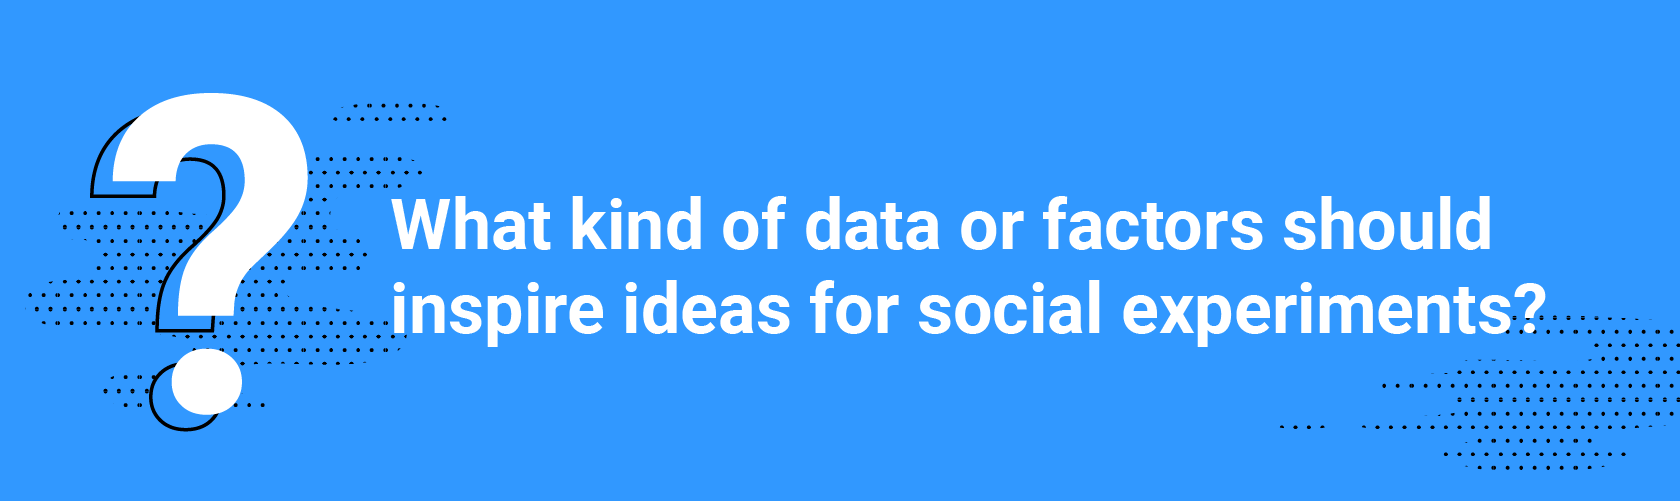 Q5. What kind of data or factors should inspire ideas for social experiments?